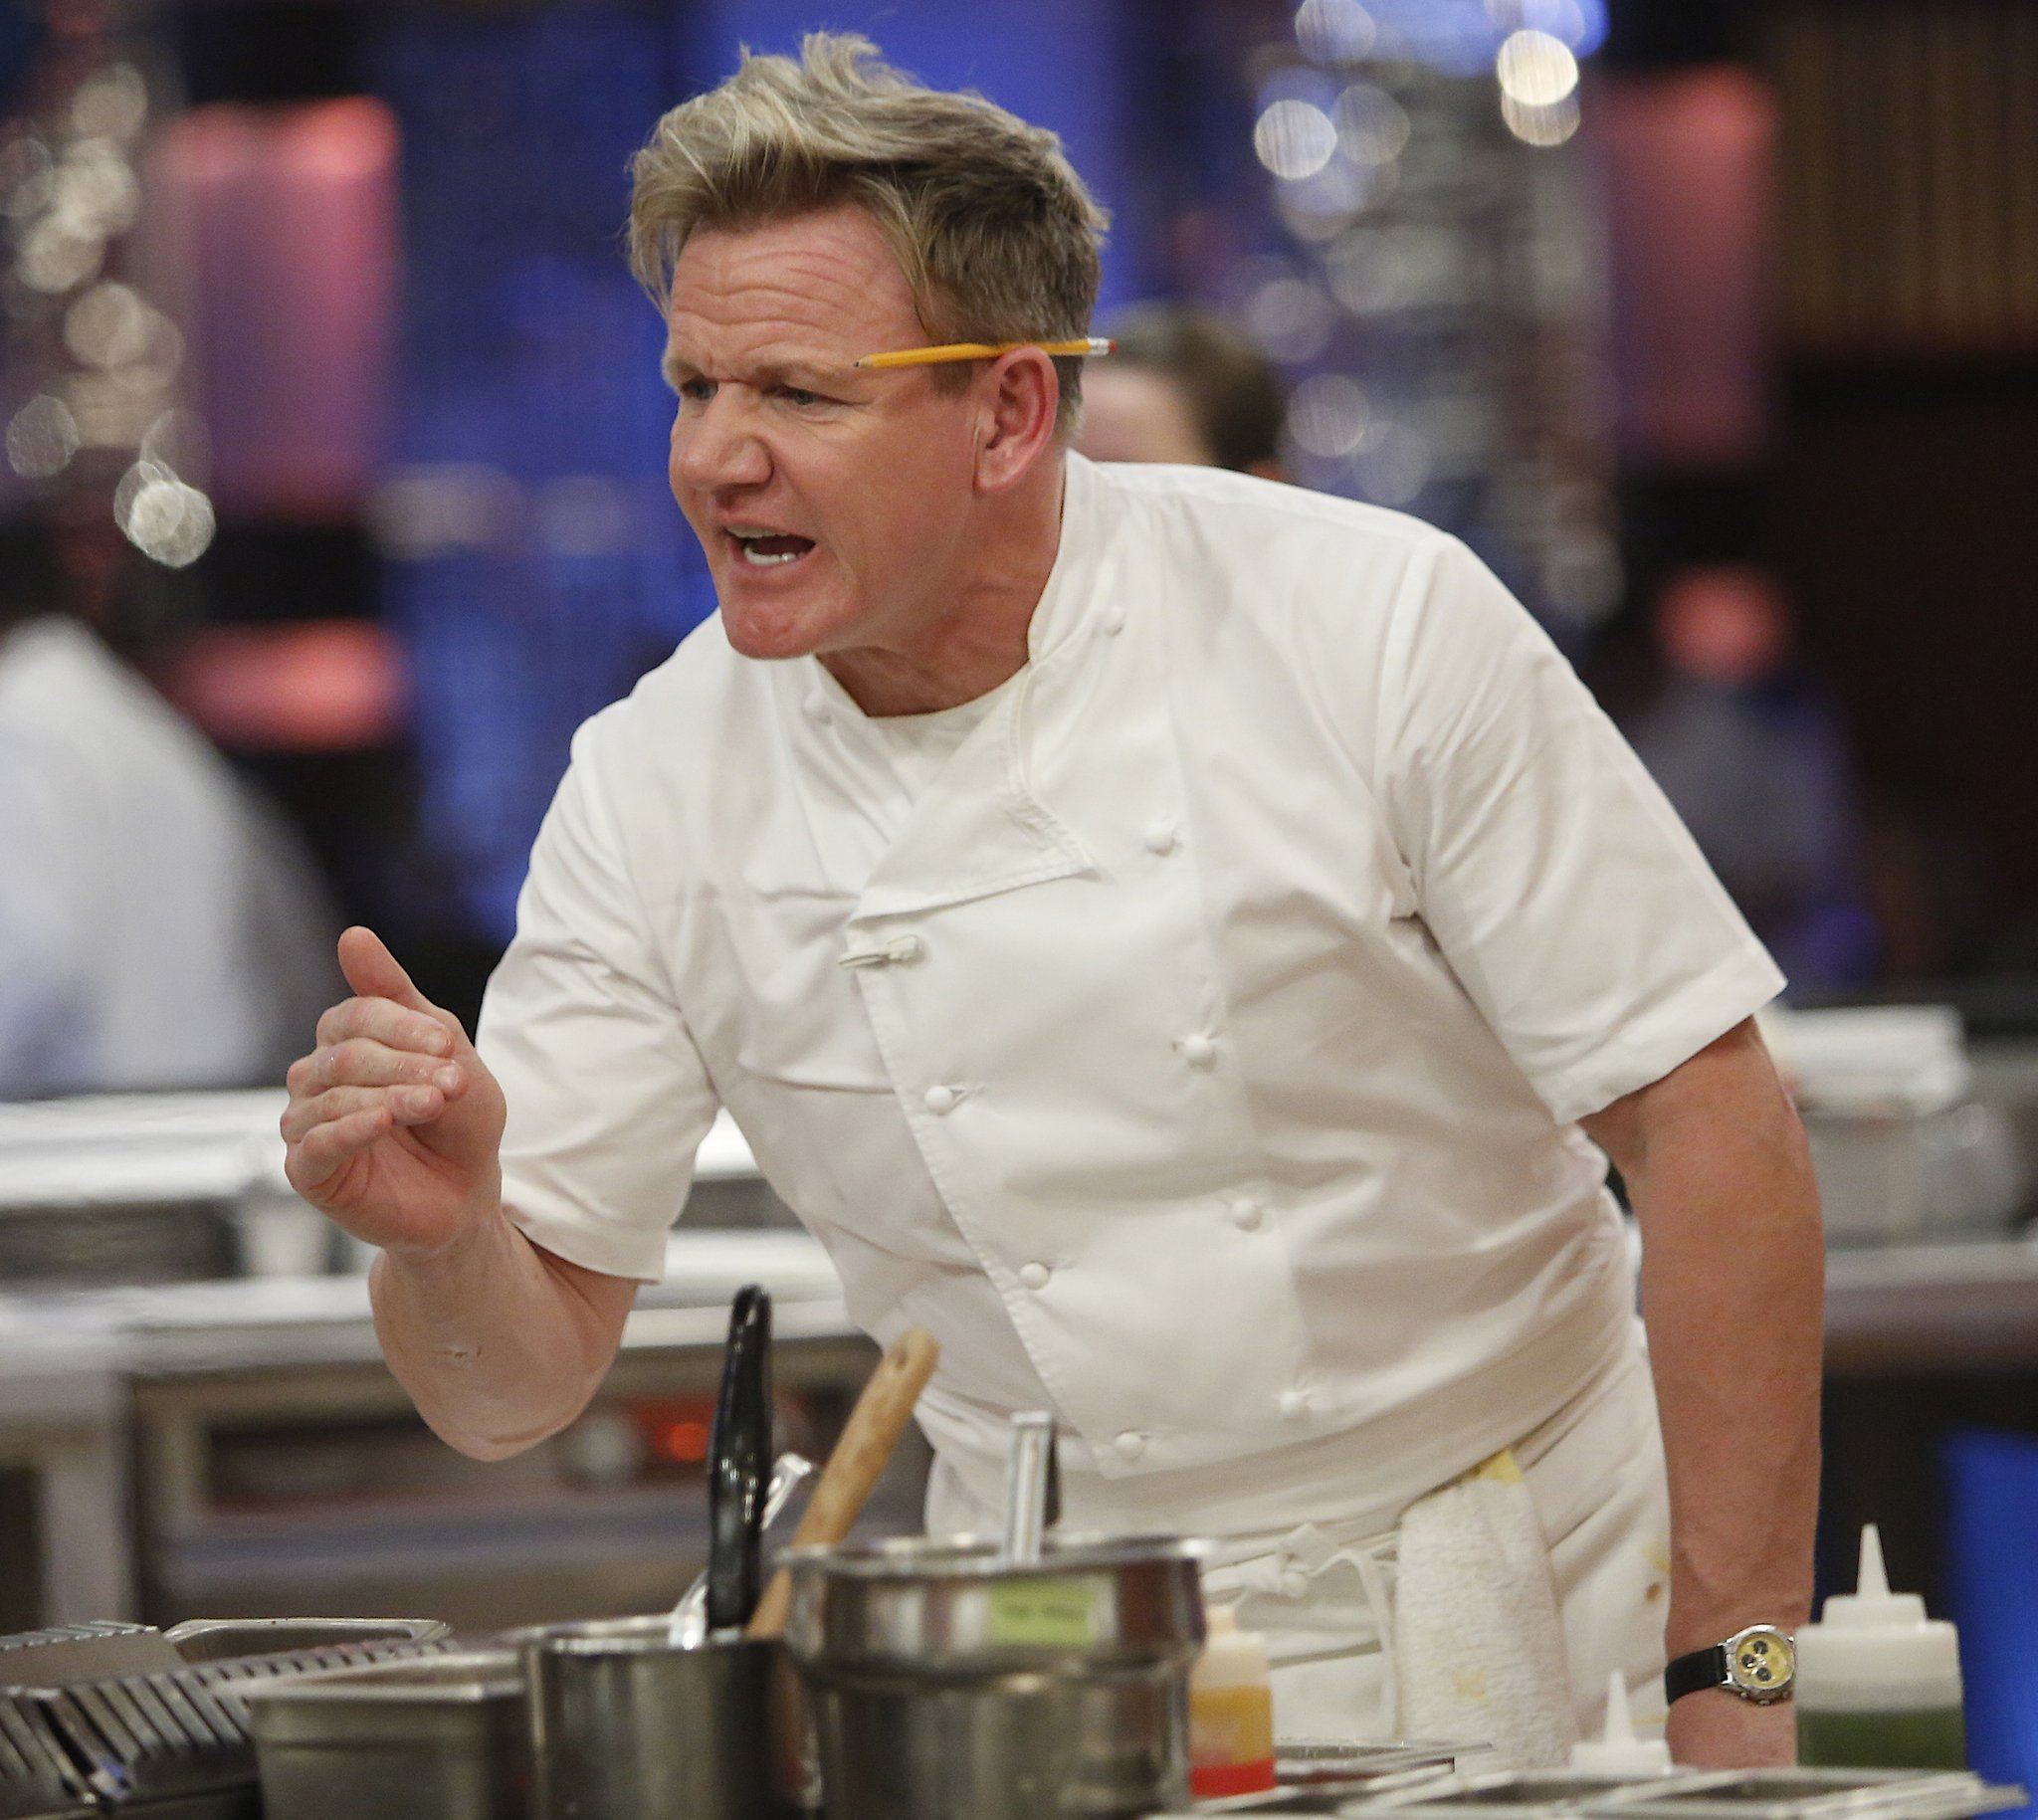 Happy Birthday Gordon Ramsay! 52 today! - KC